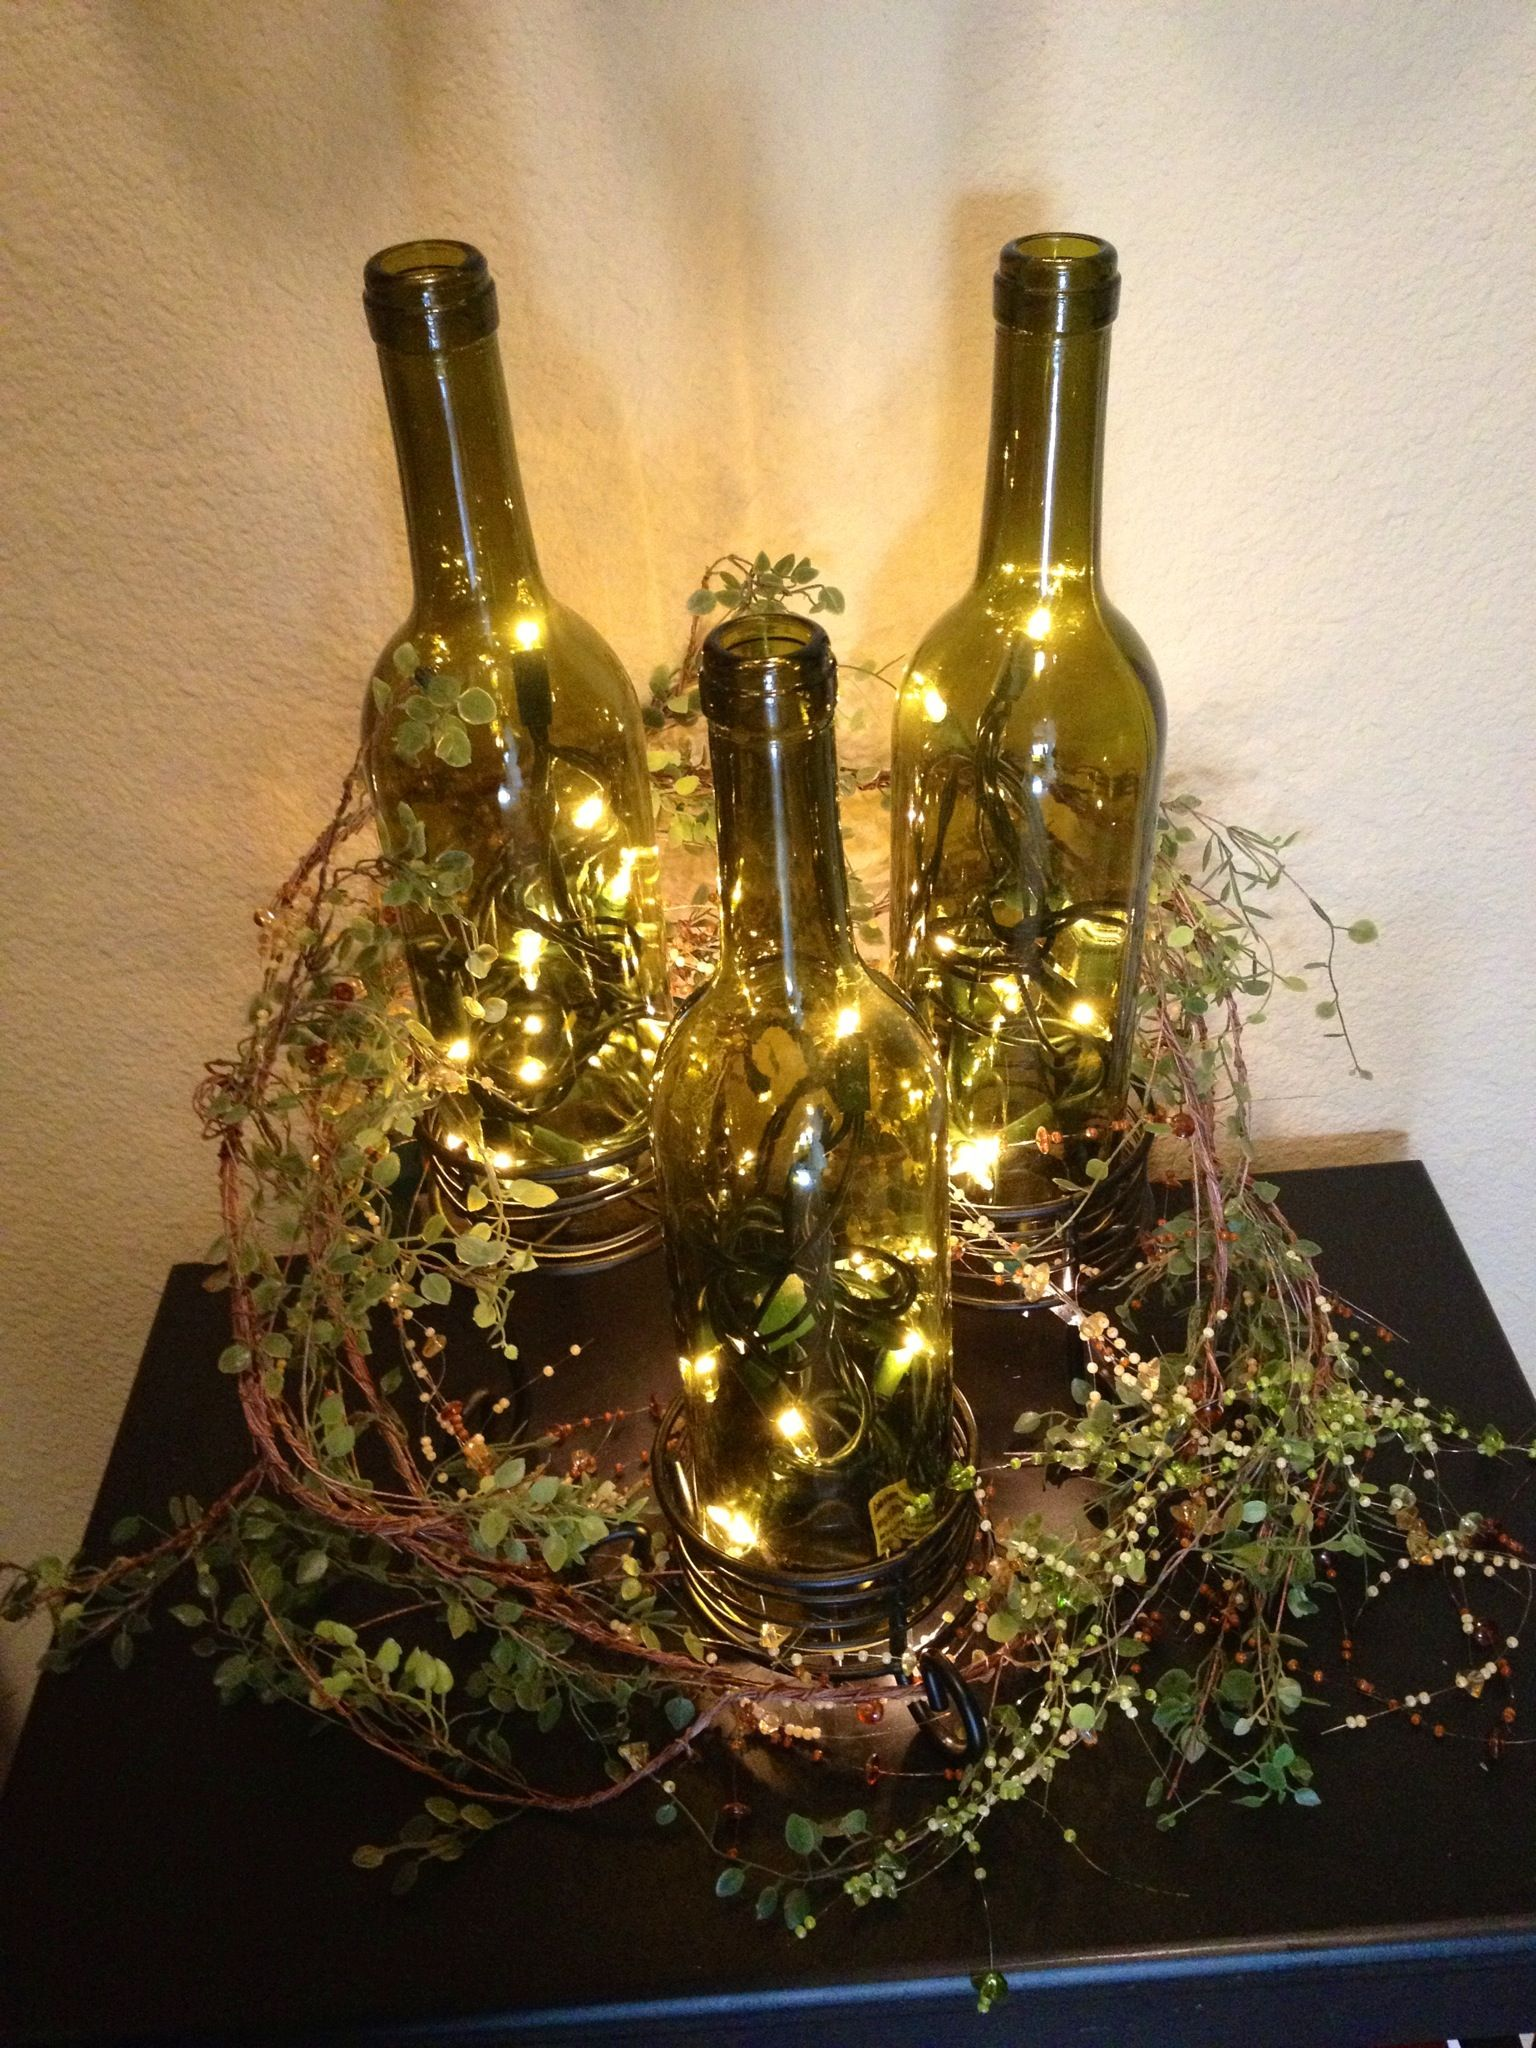 Wine bottles placed on candle holders of different sizes